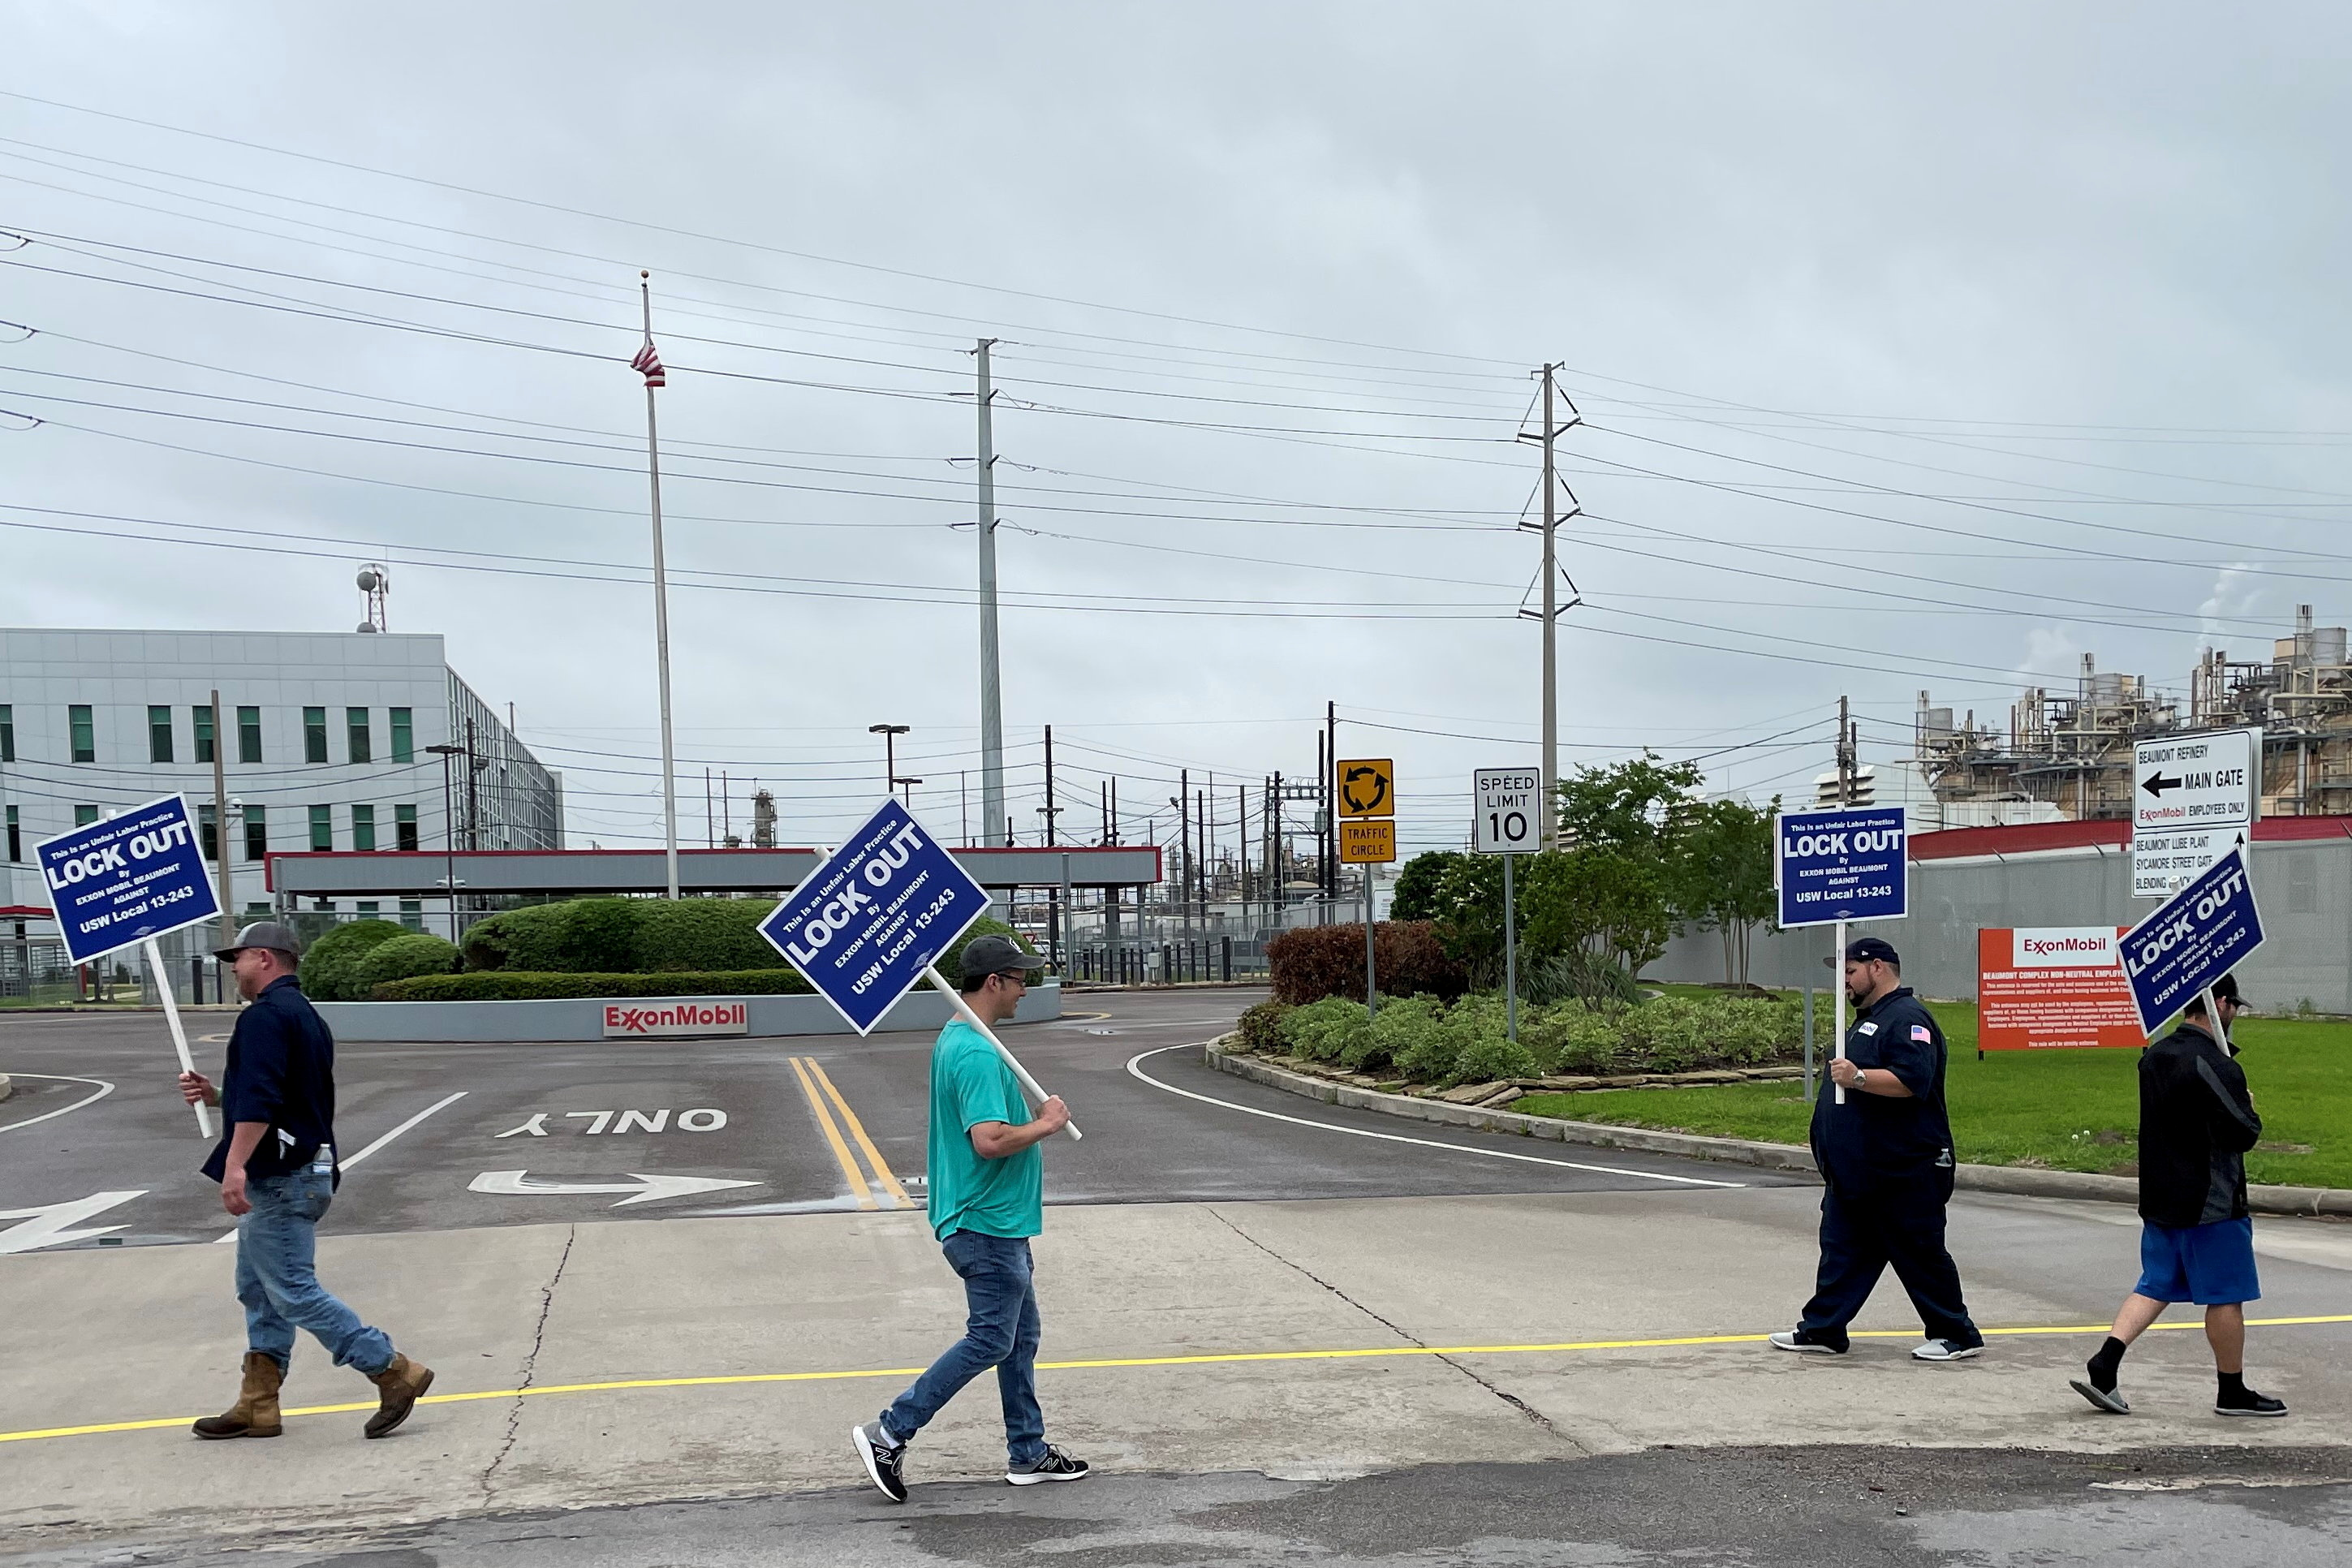 United Steelworkers (USW) union members picket outside Exxon Mobil's oil refinery amid a contract dispute in Beaumont, Texas, U.S., May 1, 2021. Exxon locked out the plant's about 650 union-represented employees citing fears of a strike. REUTERS/Erwin Seba/File Photo